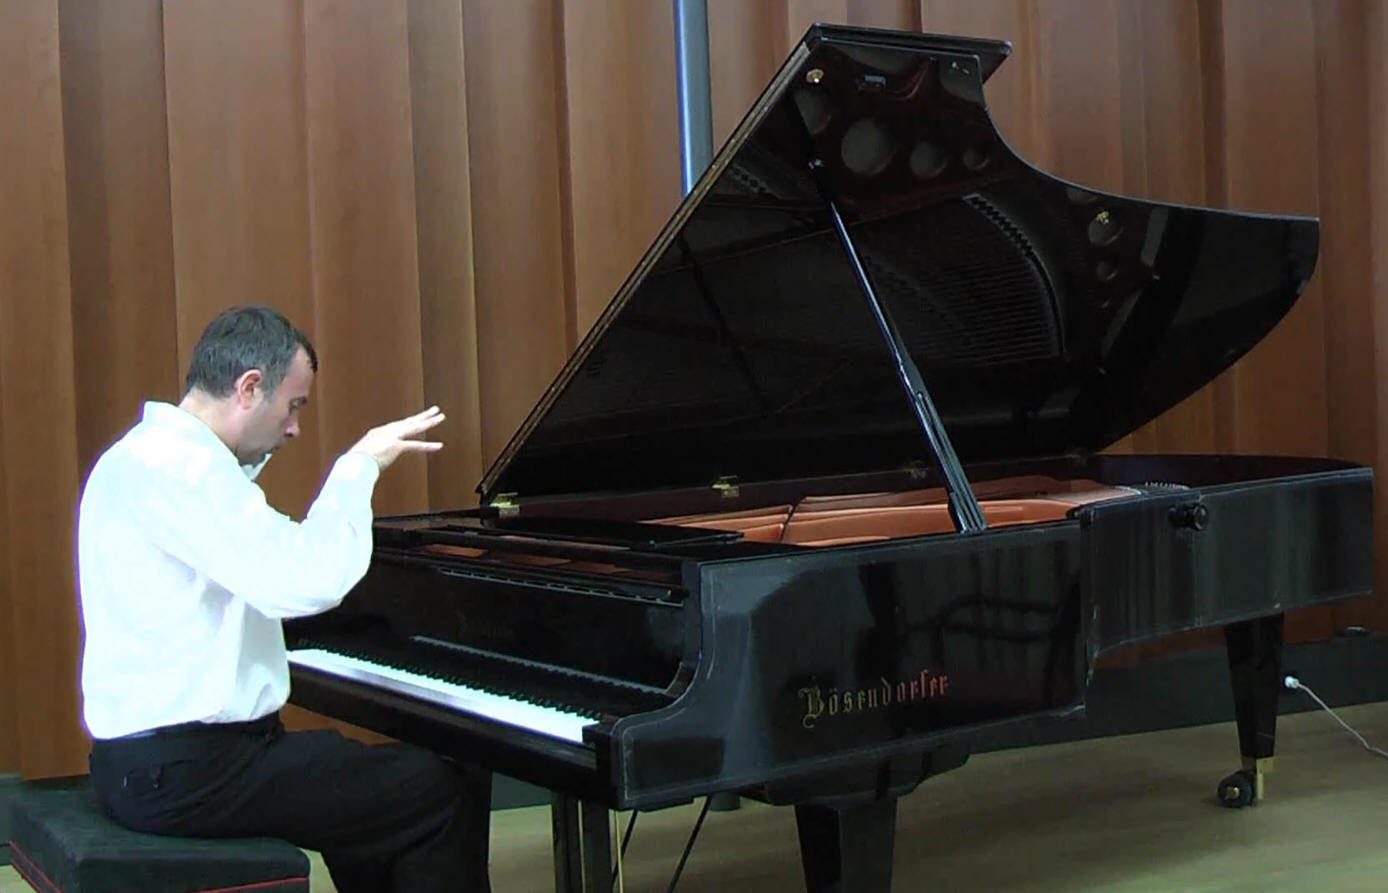 Wolfgang Ellenberger @ Bsendorfer Imperial concert grand piano